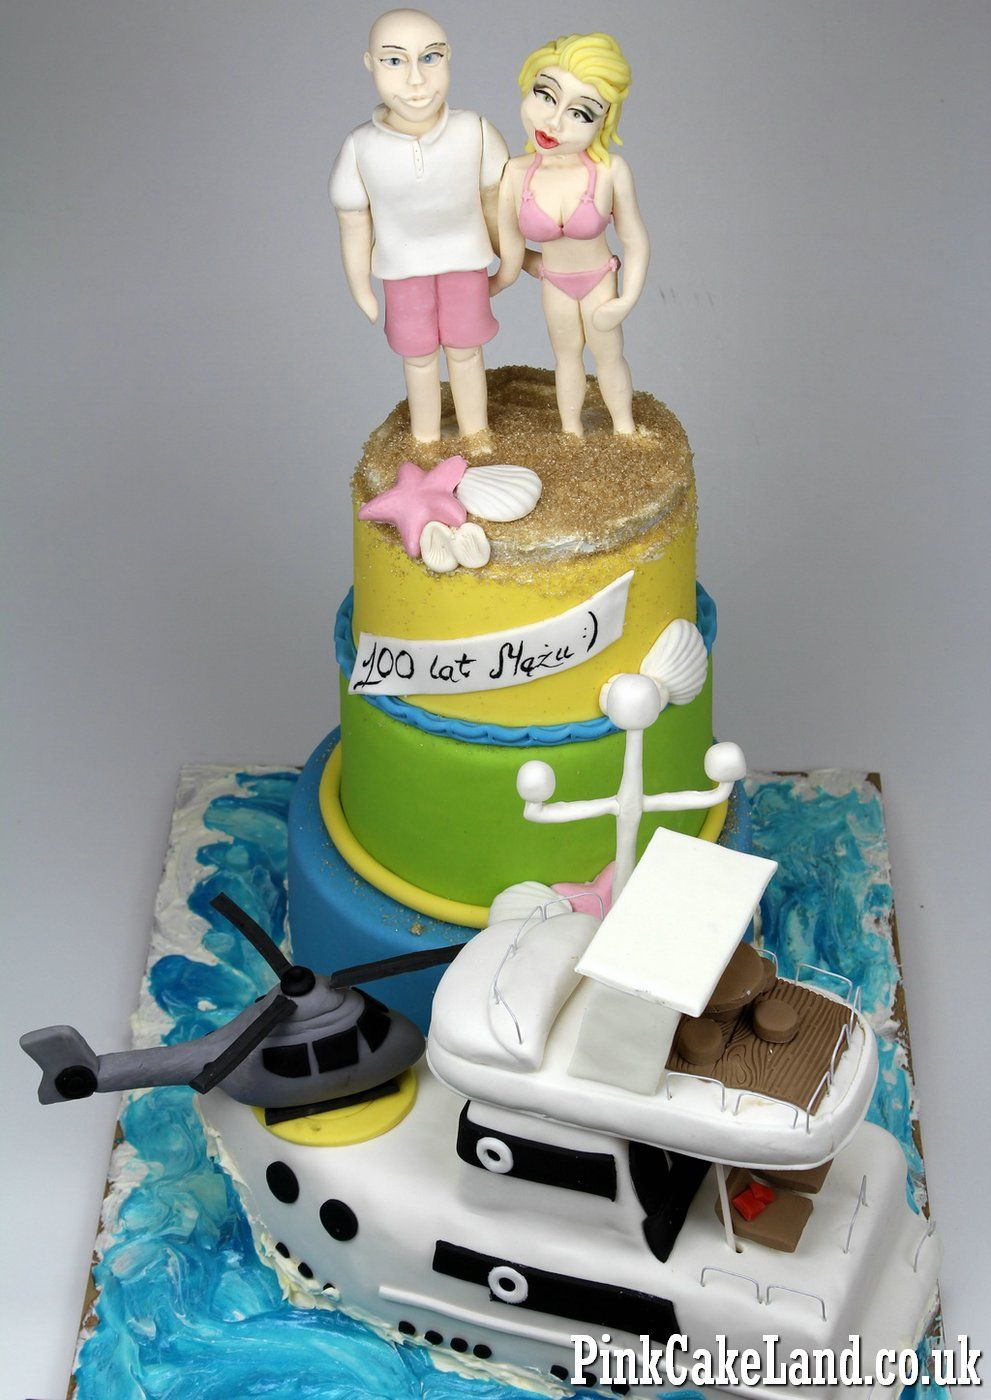 Anniversary Cake for Couple, Lodnon Cakes http//www